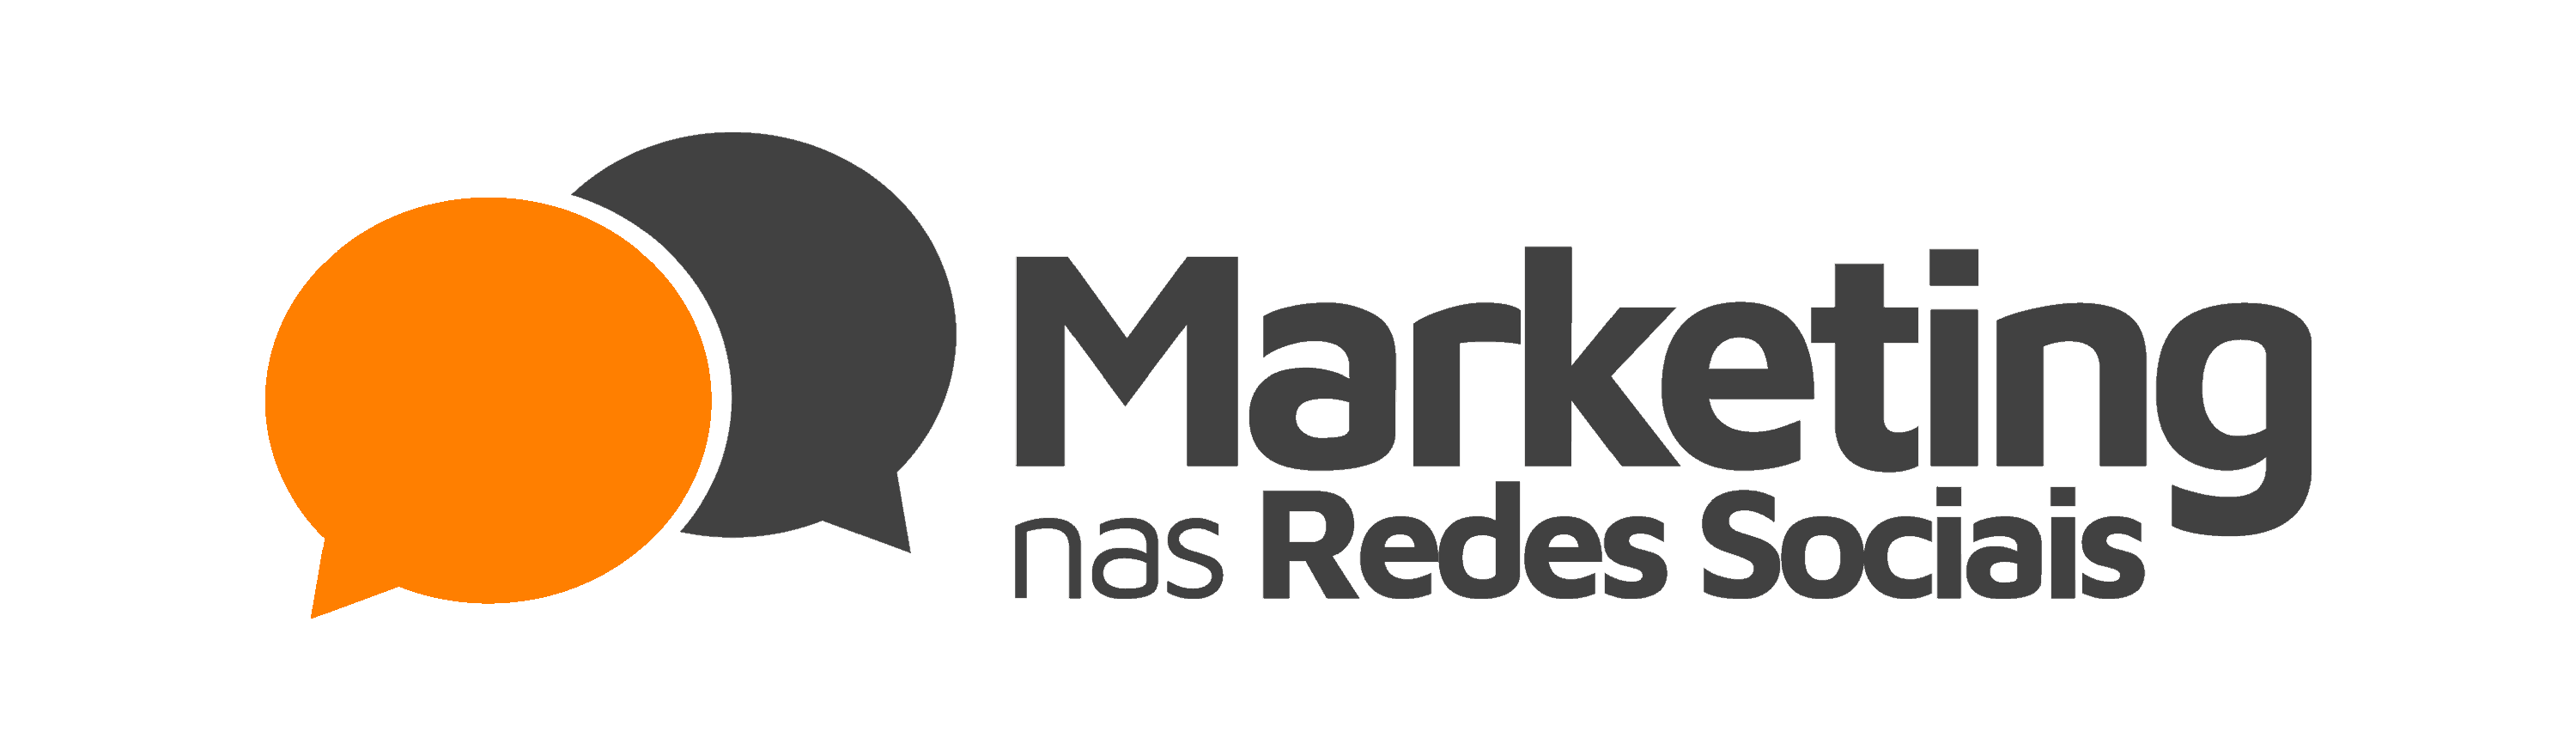 marketing nas redes sociais - logo 2019